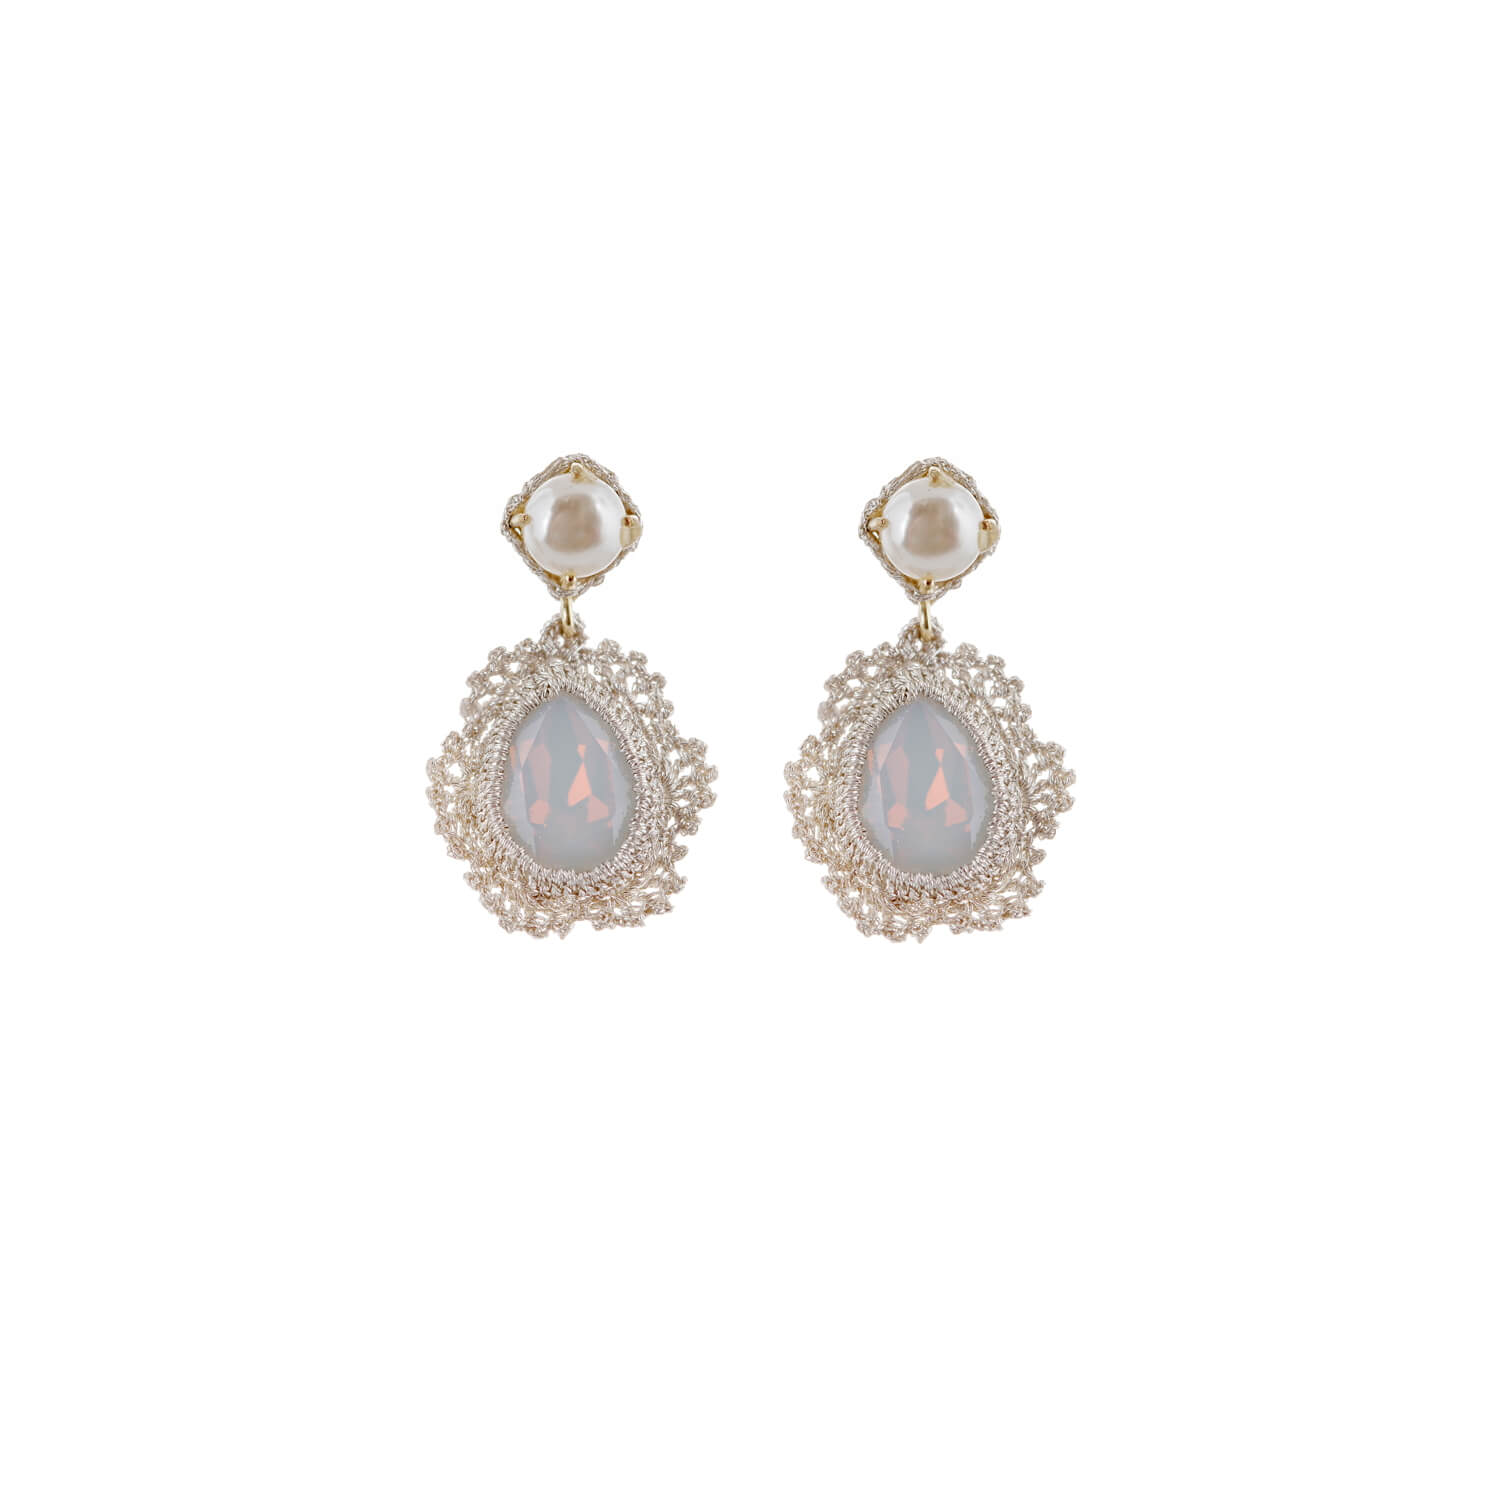 Disco Single Drop Large Crystal Earrings - Opal Pearl Lobe